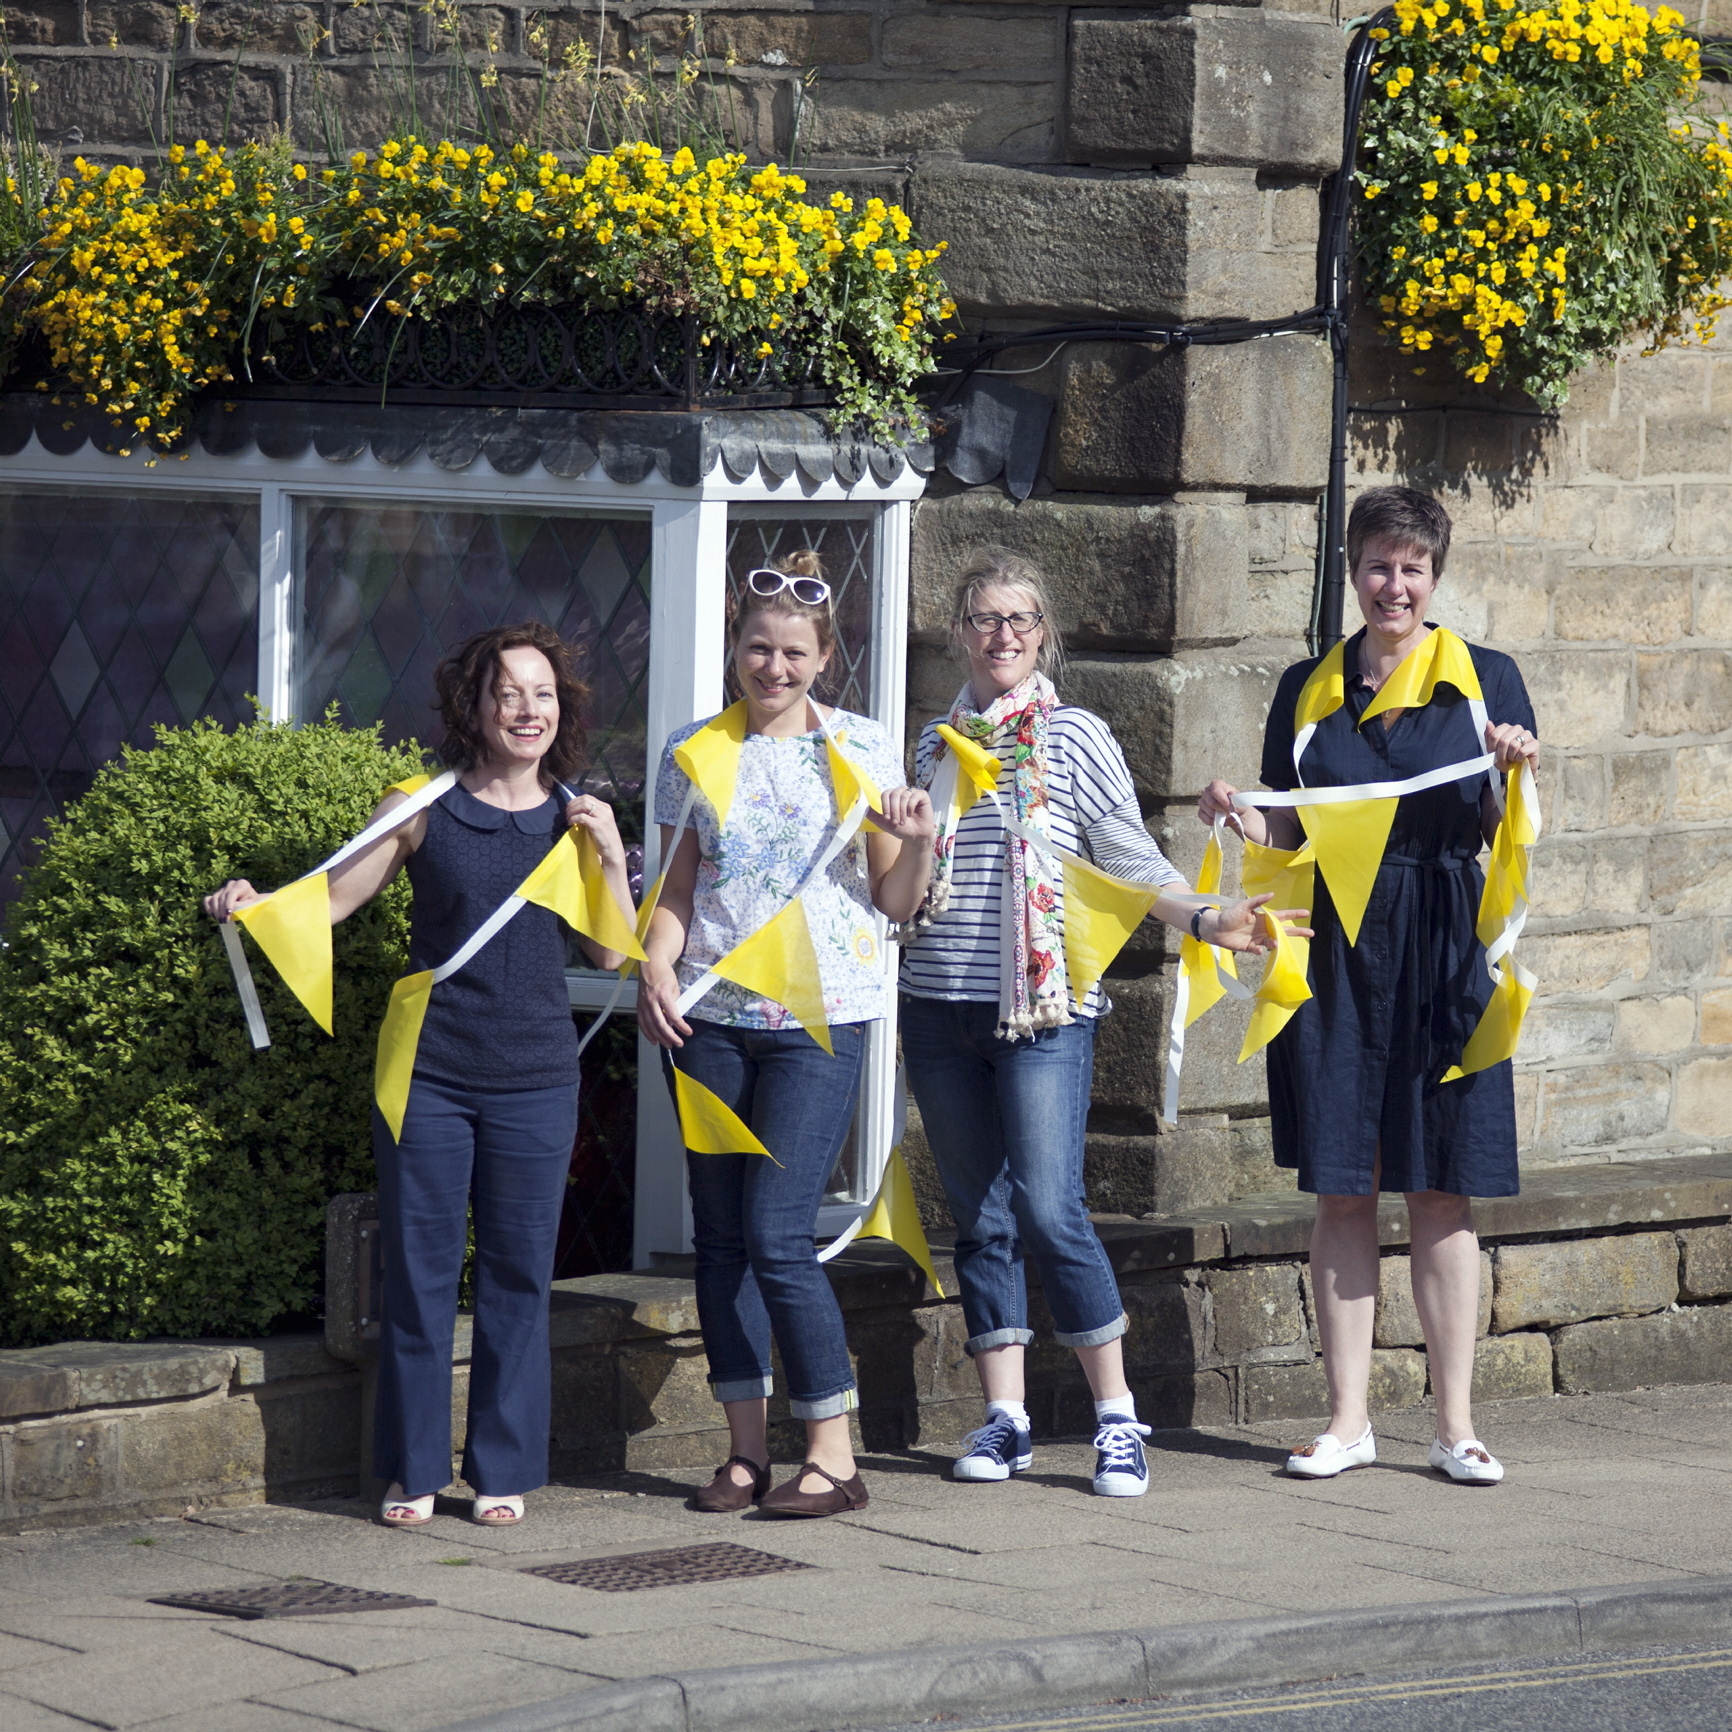 Emma Garry, from Eme Cloth & Yarn, Jenni Smith, of Sew with the Flow, Caroline Grice Ellis, of  Ashlands Makes and Leonie Pratt, of The Sewing Shed, with the Tour de France bunting